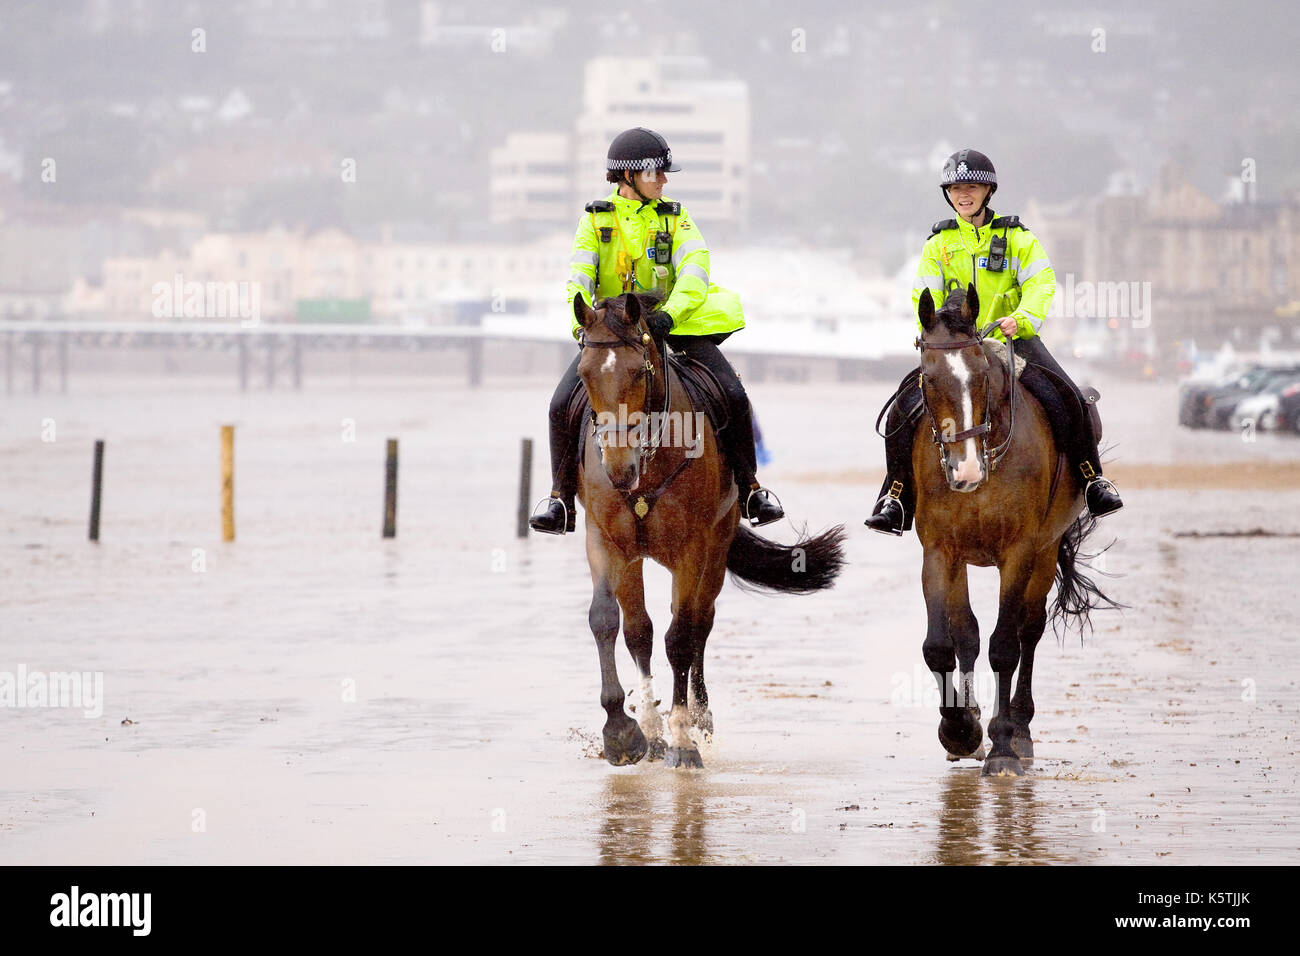 Two Mouned Police Woman, on patrol,  in fluorescent uniforms riding.their Police Horses along a beach in wet windy weather. - Stock Image